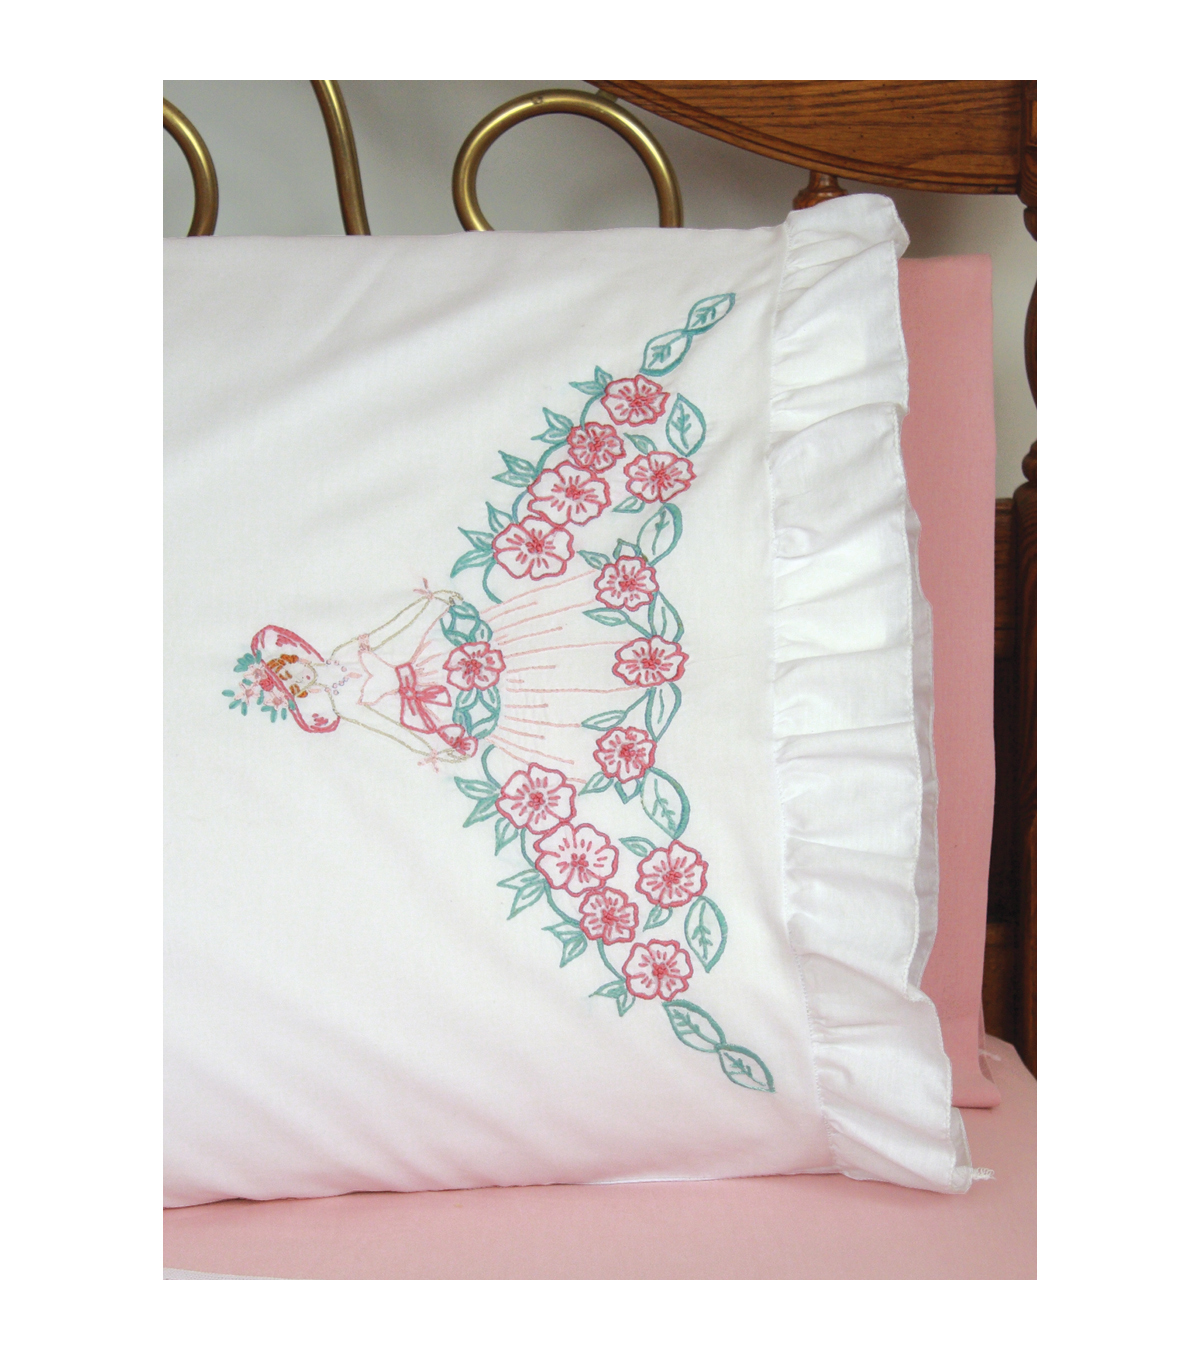 Fairway Stamped Lace Edge Pillowcase Flower Lady